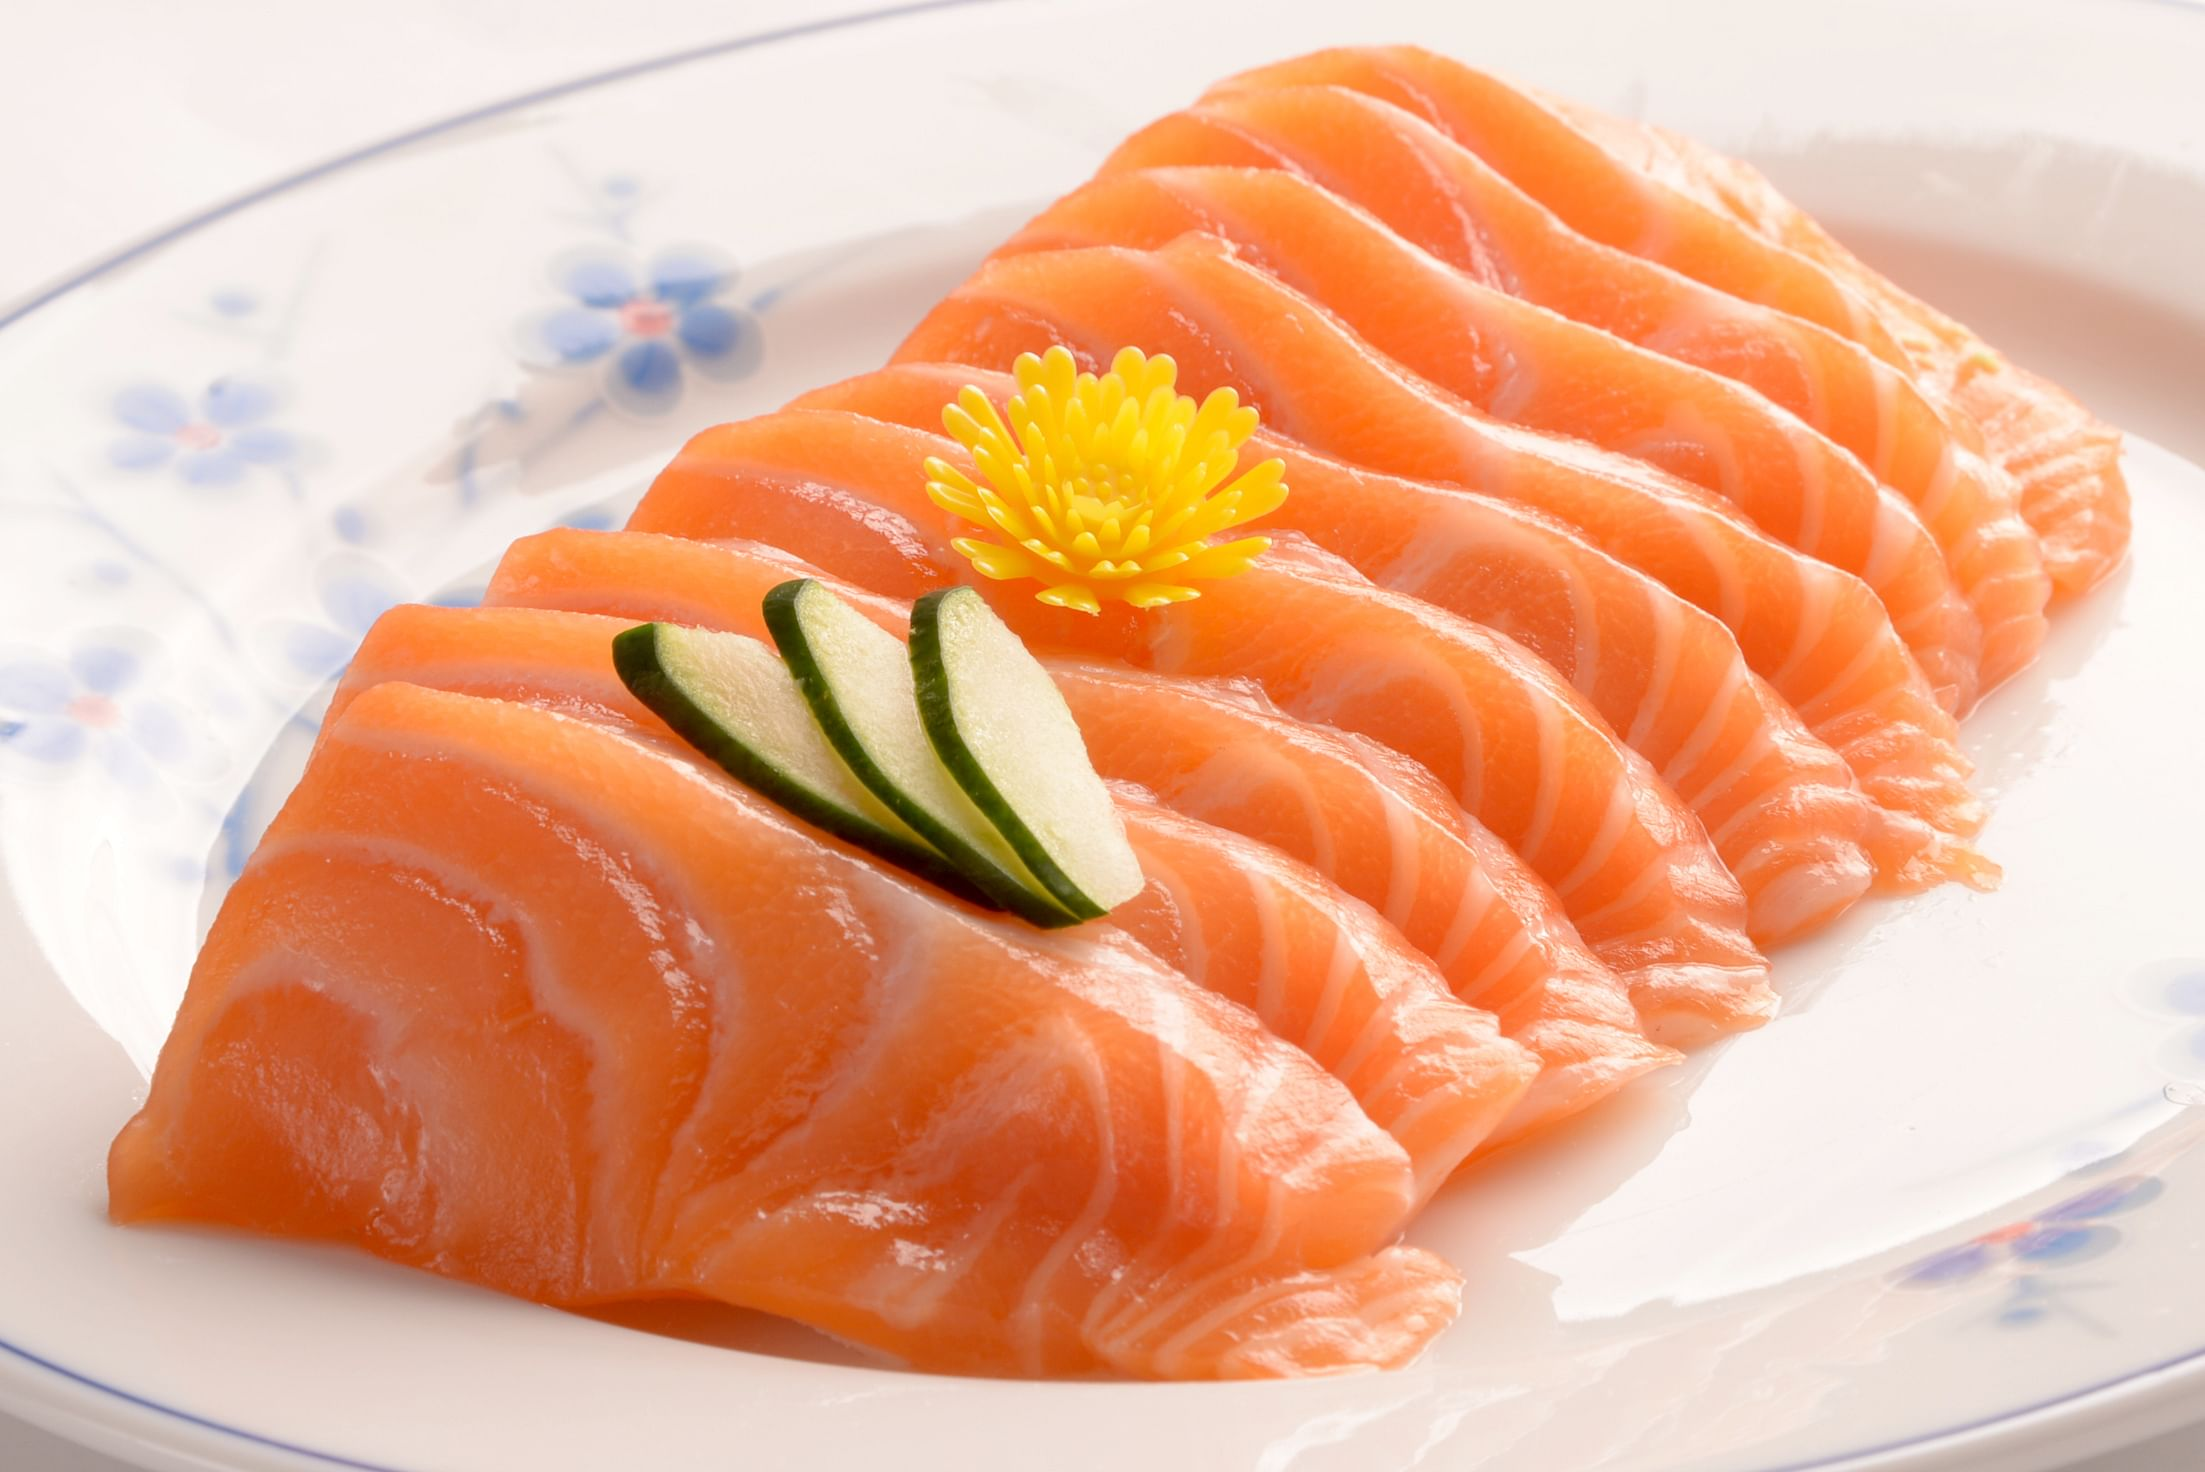 Feeling ill after meals 5 recent cases of food poisoning for Raw fish food poisoning